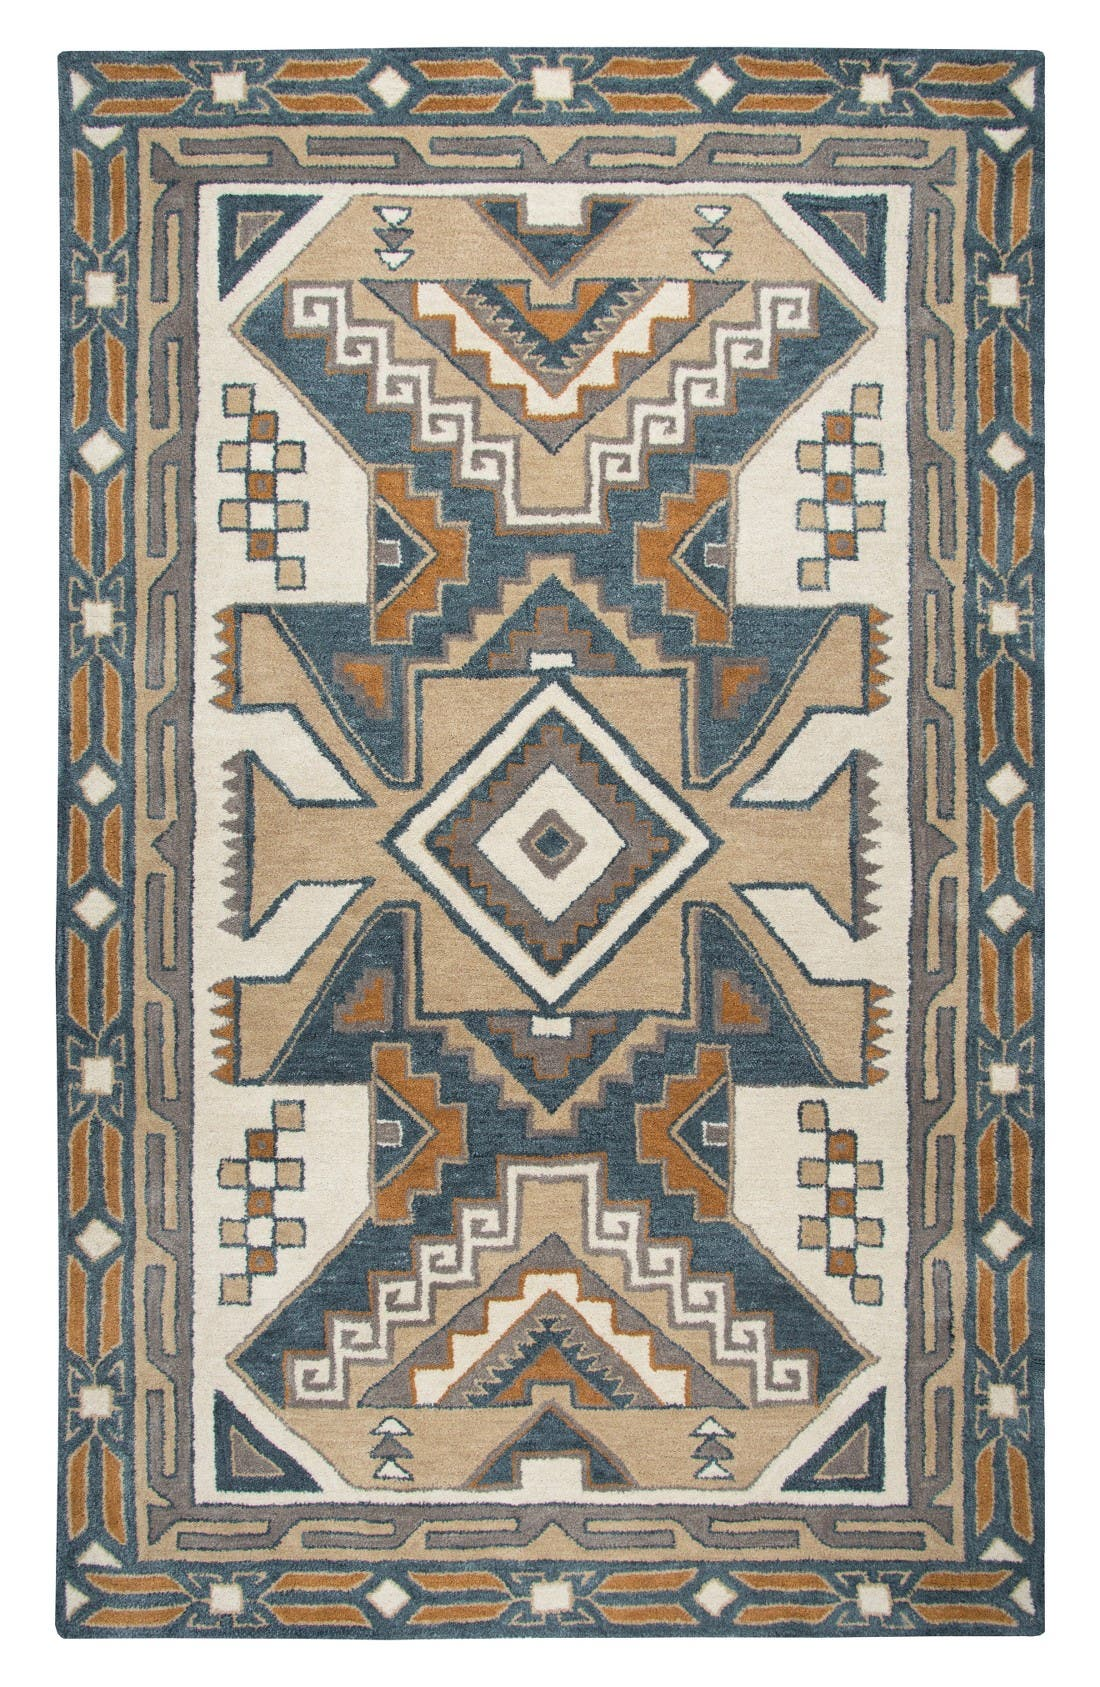 Alternate Image 1 Selected - Rizzy Home Urban Tiles Hand Tufted Wool Rug